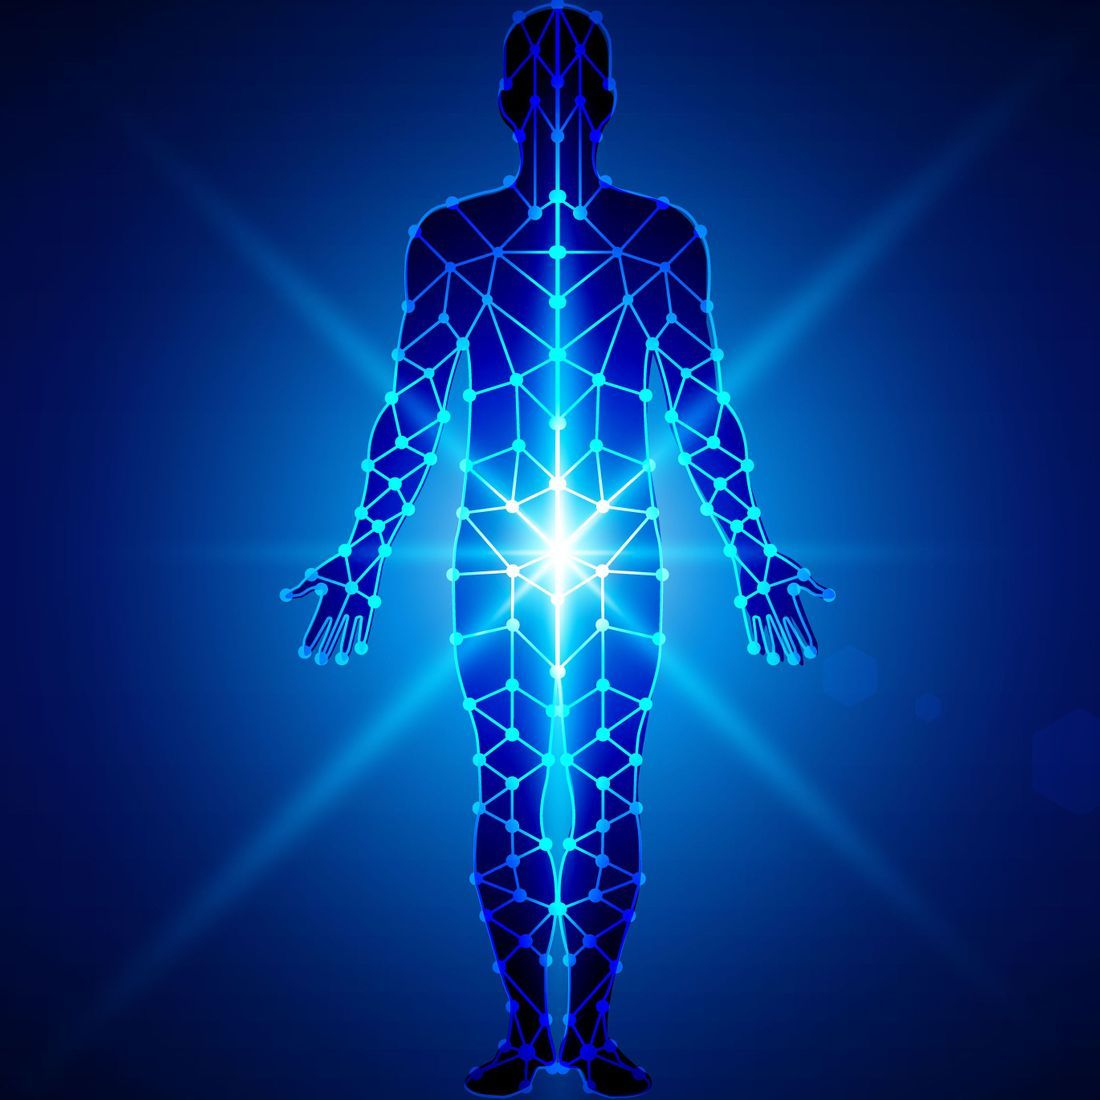 Creating the correct frequencies in the body using biofeedback